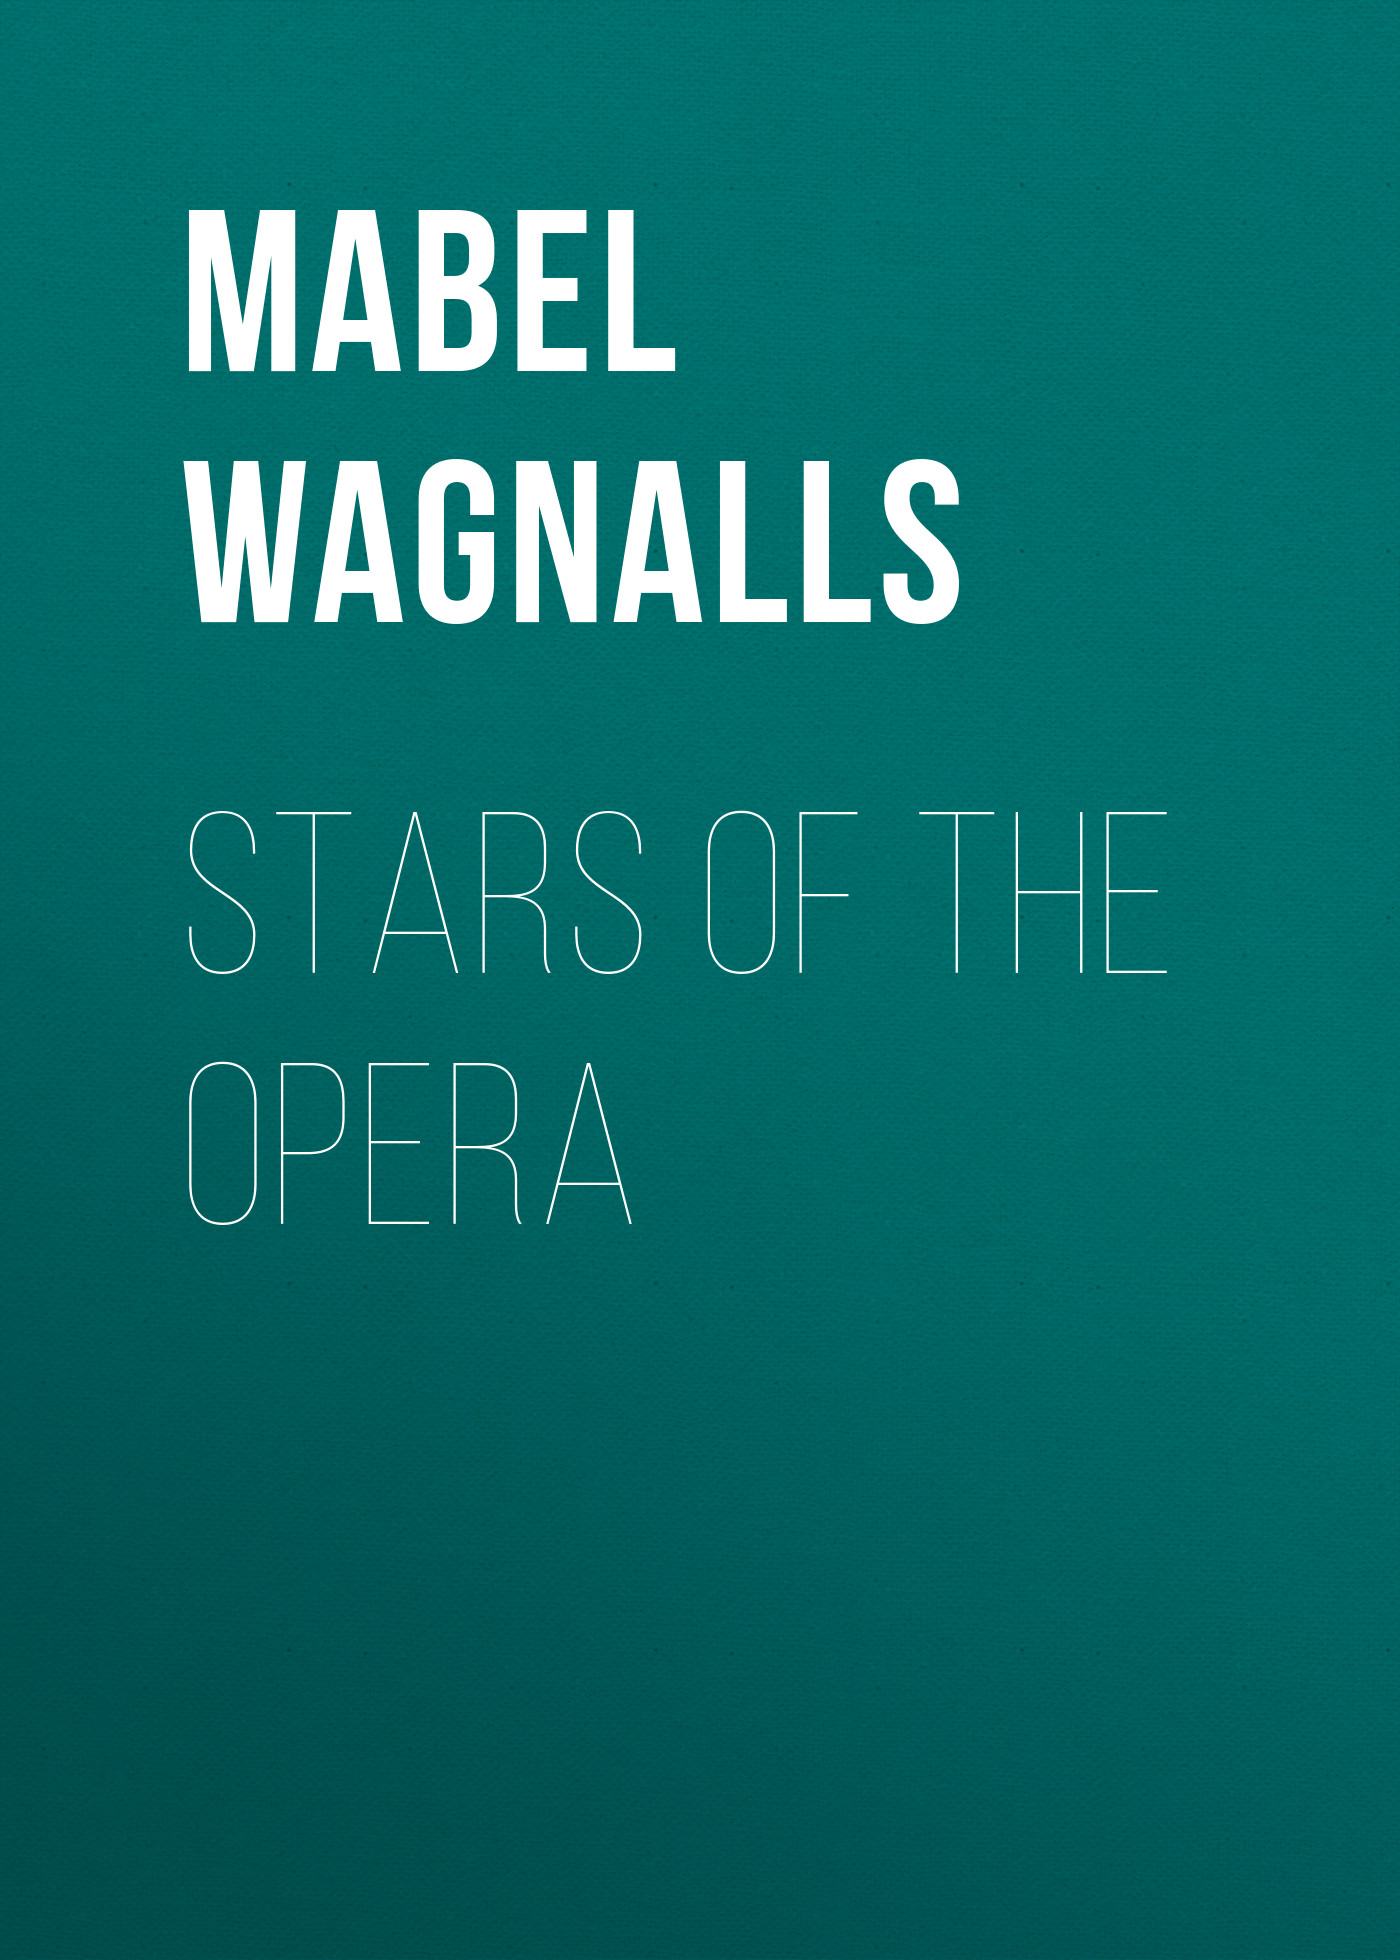 Mabel Wagnalls Stars of the Opera mabel wagnalls stars of the opera